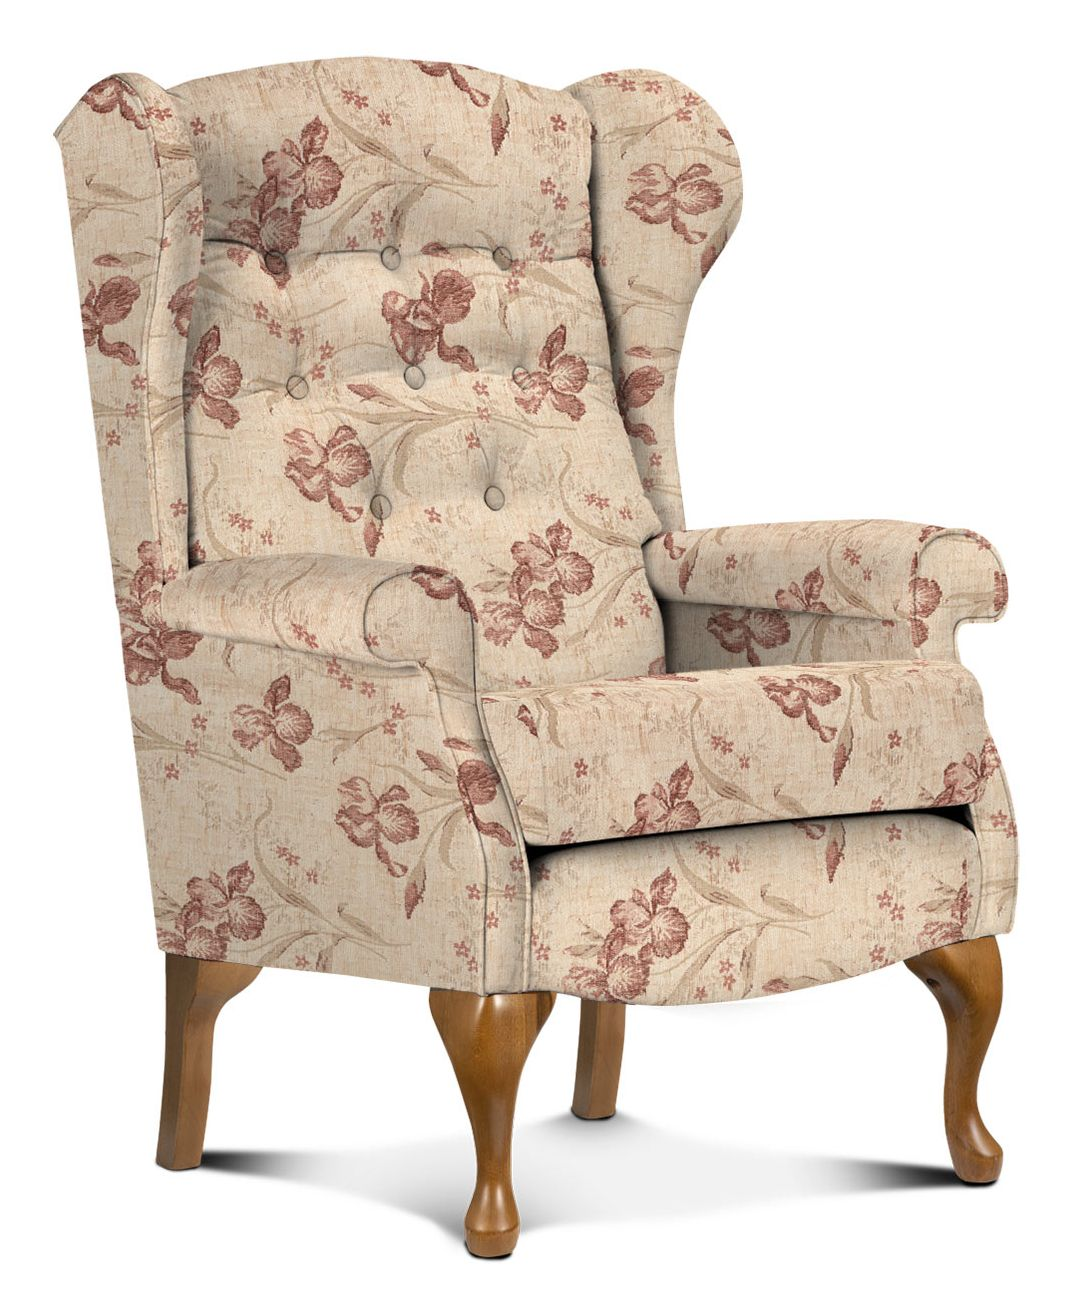 Sherborne Upholstery Sherborne Brompton High Seat Chair ...